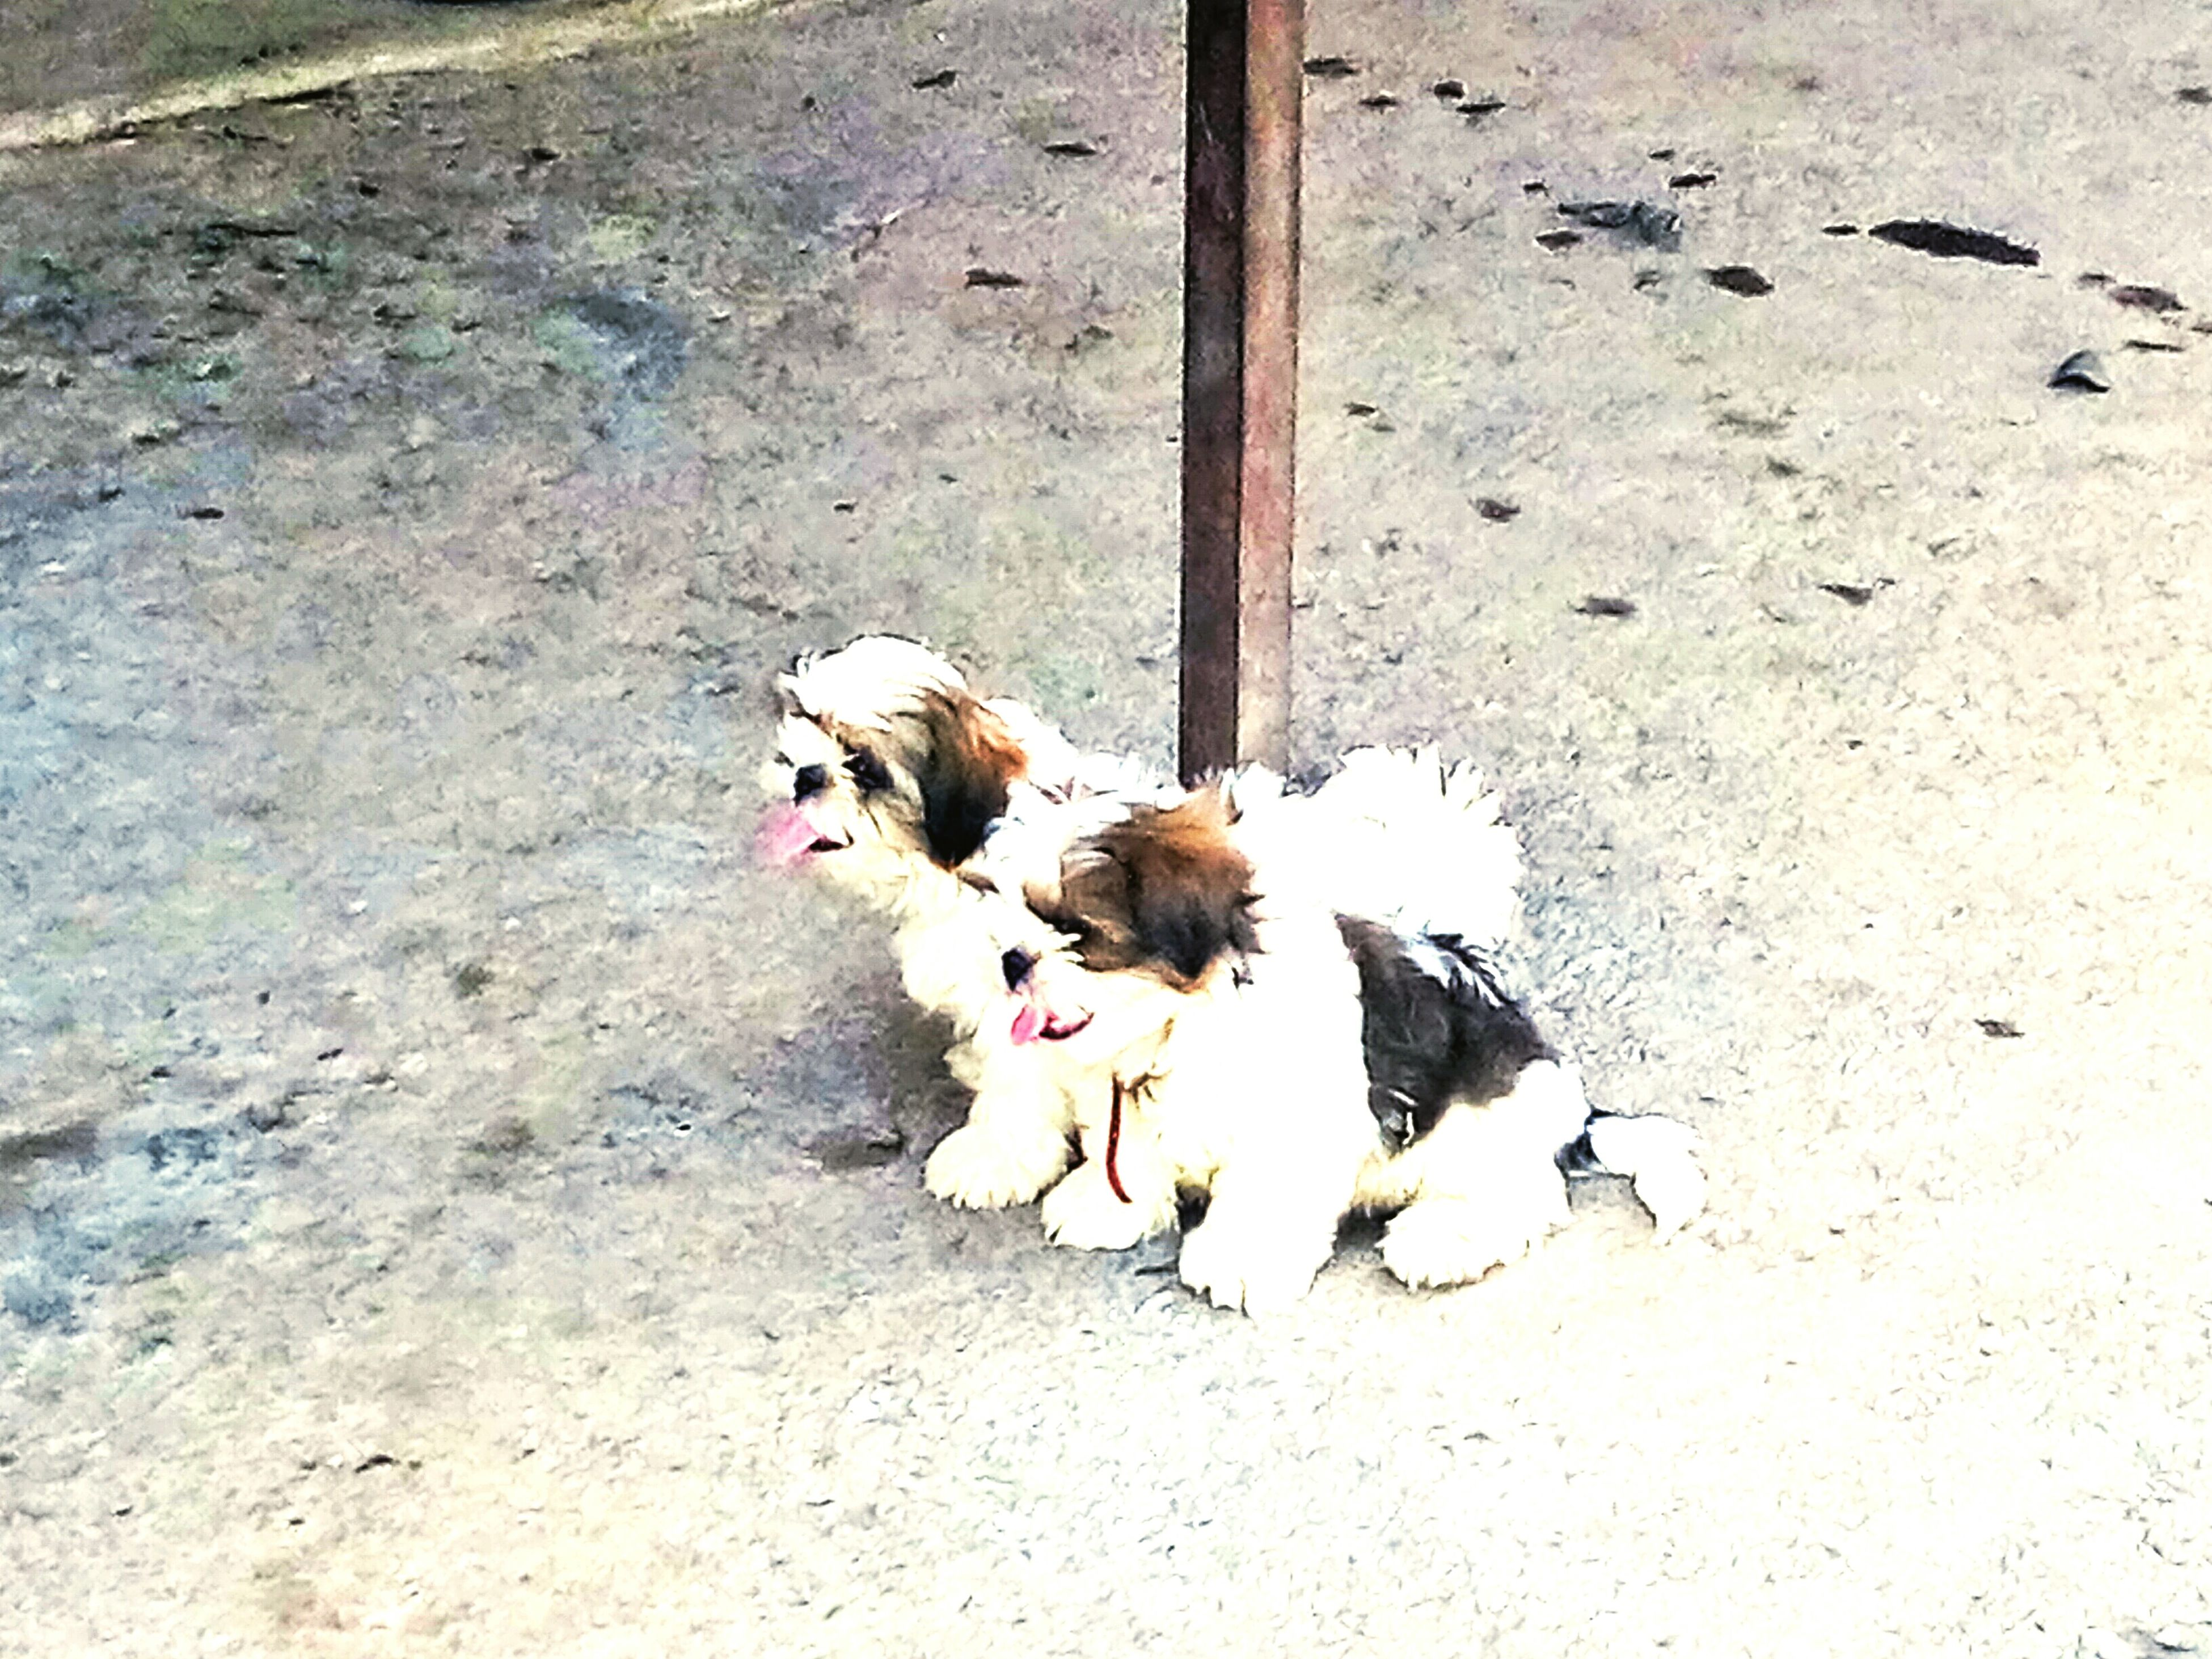 animal themes, domestic animals, dog, pets, high angle view, mammal, one animal, two animals, full length, young animal, pet leash, togetherness, zoology, day, outdoors, looking at camera, no people, street, bird, puppy